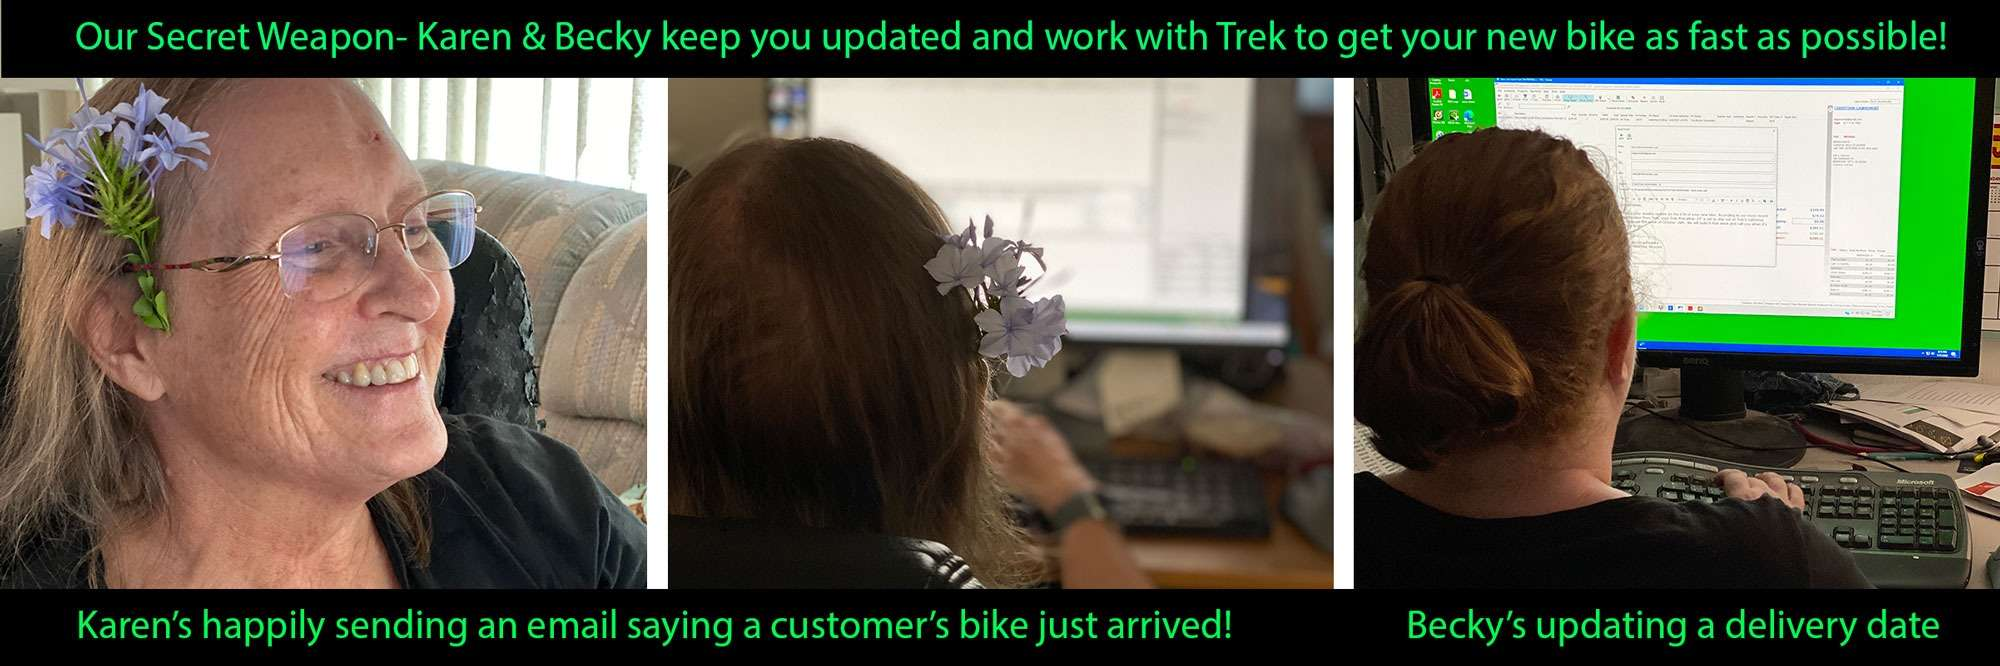 Our secret weapon! Karen & Becky keeping you updated and working with Trek to get your new bike as fast as possible!